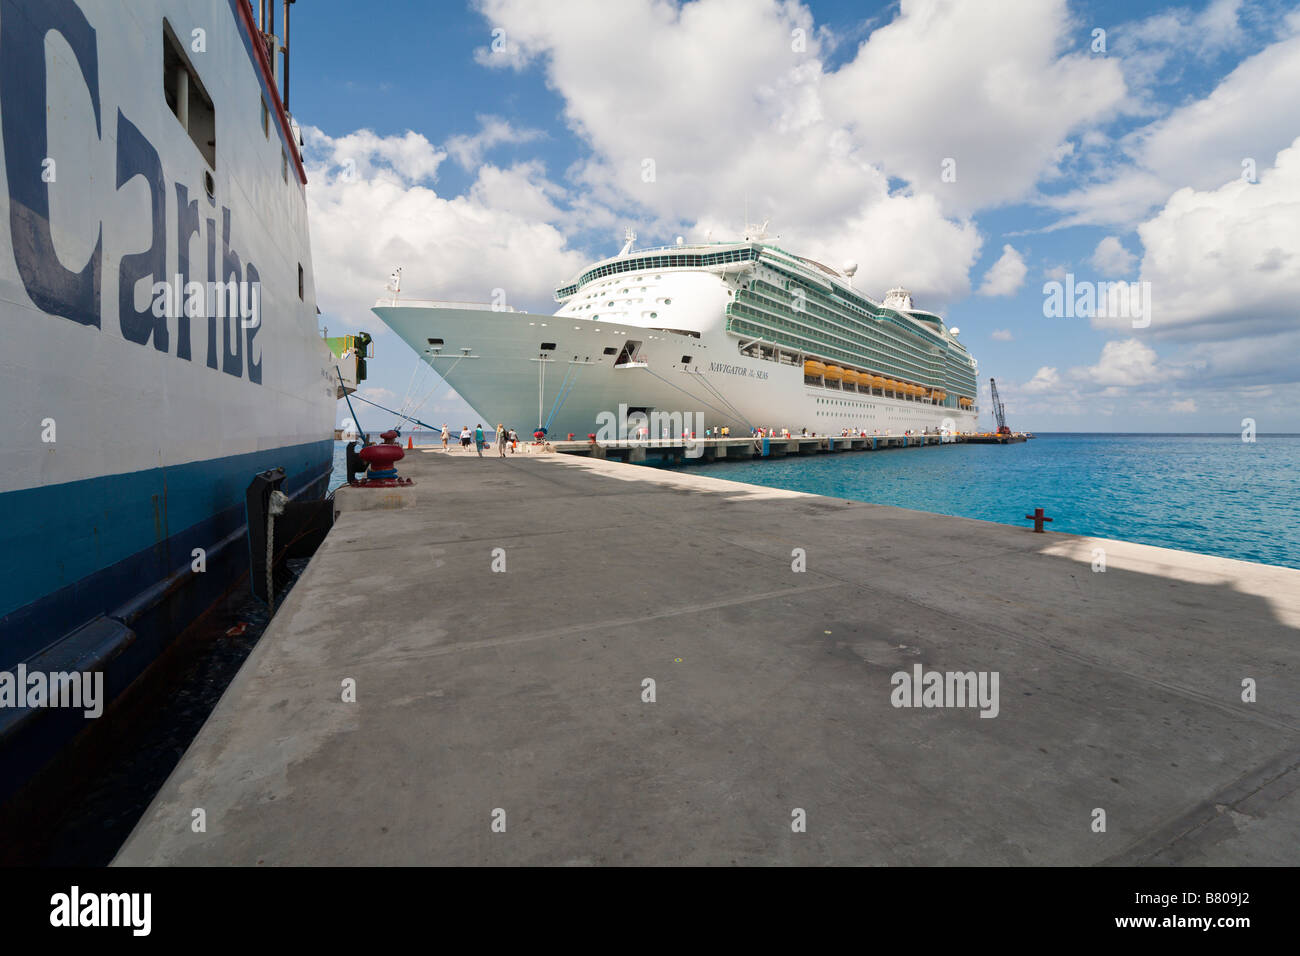 Royal Caribbean Navigator of the Seas cruise ship docked at port in Cozumel, Mexico - Stock Image